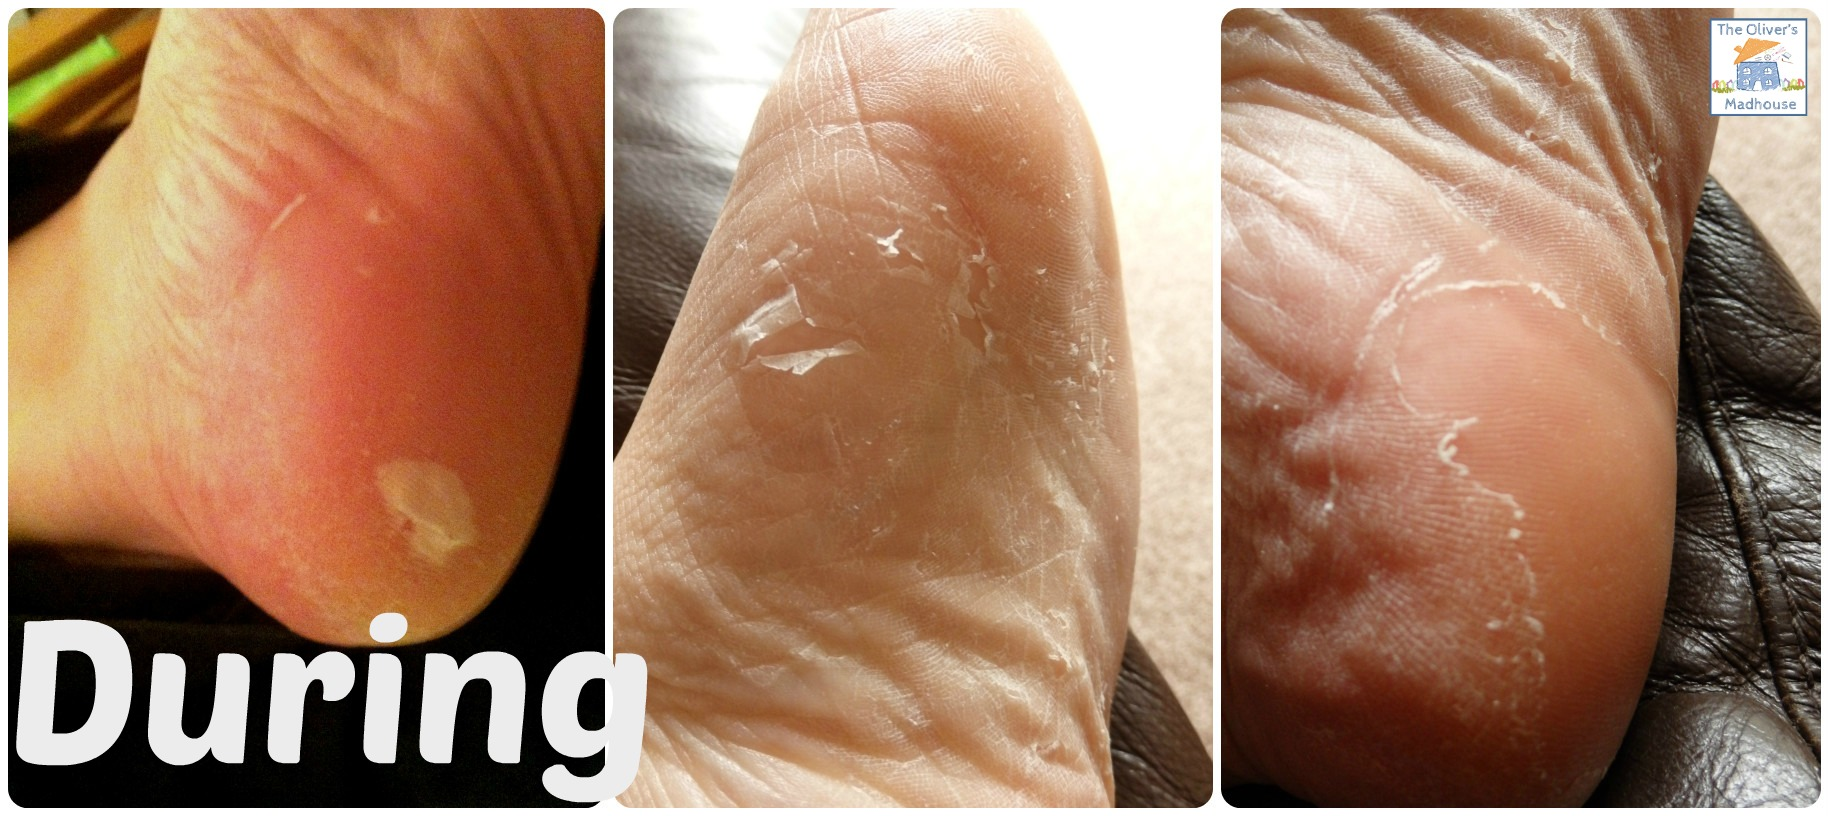 Photos Of Dry Cracked Feet During Footner Exfoliating Sock Treatment